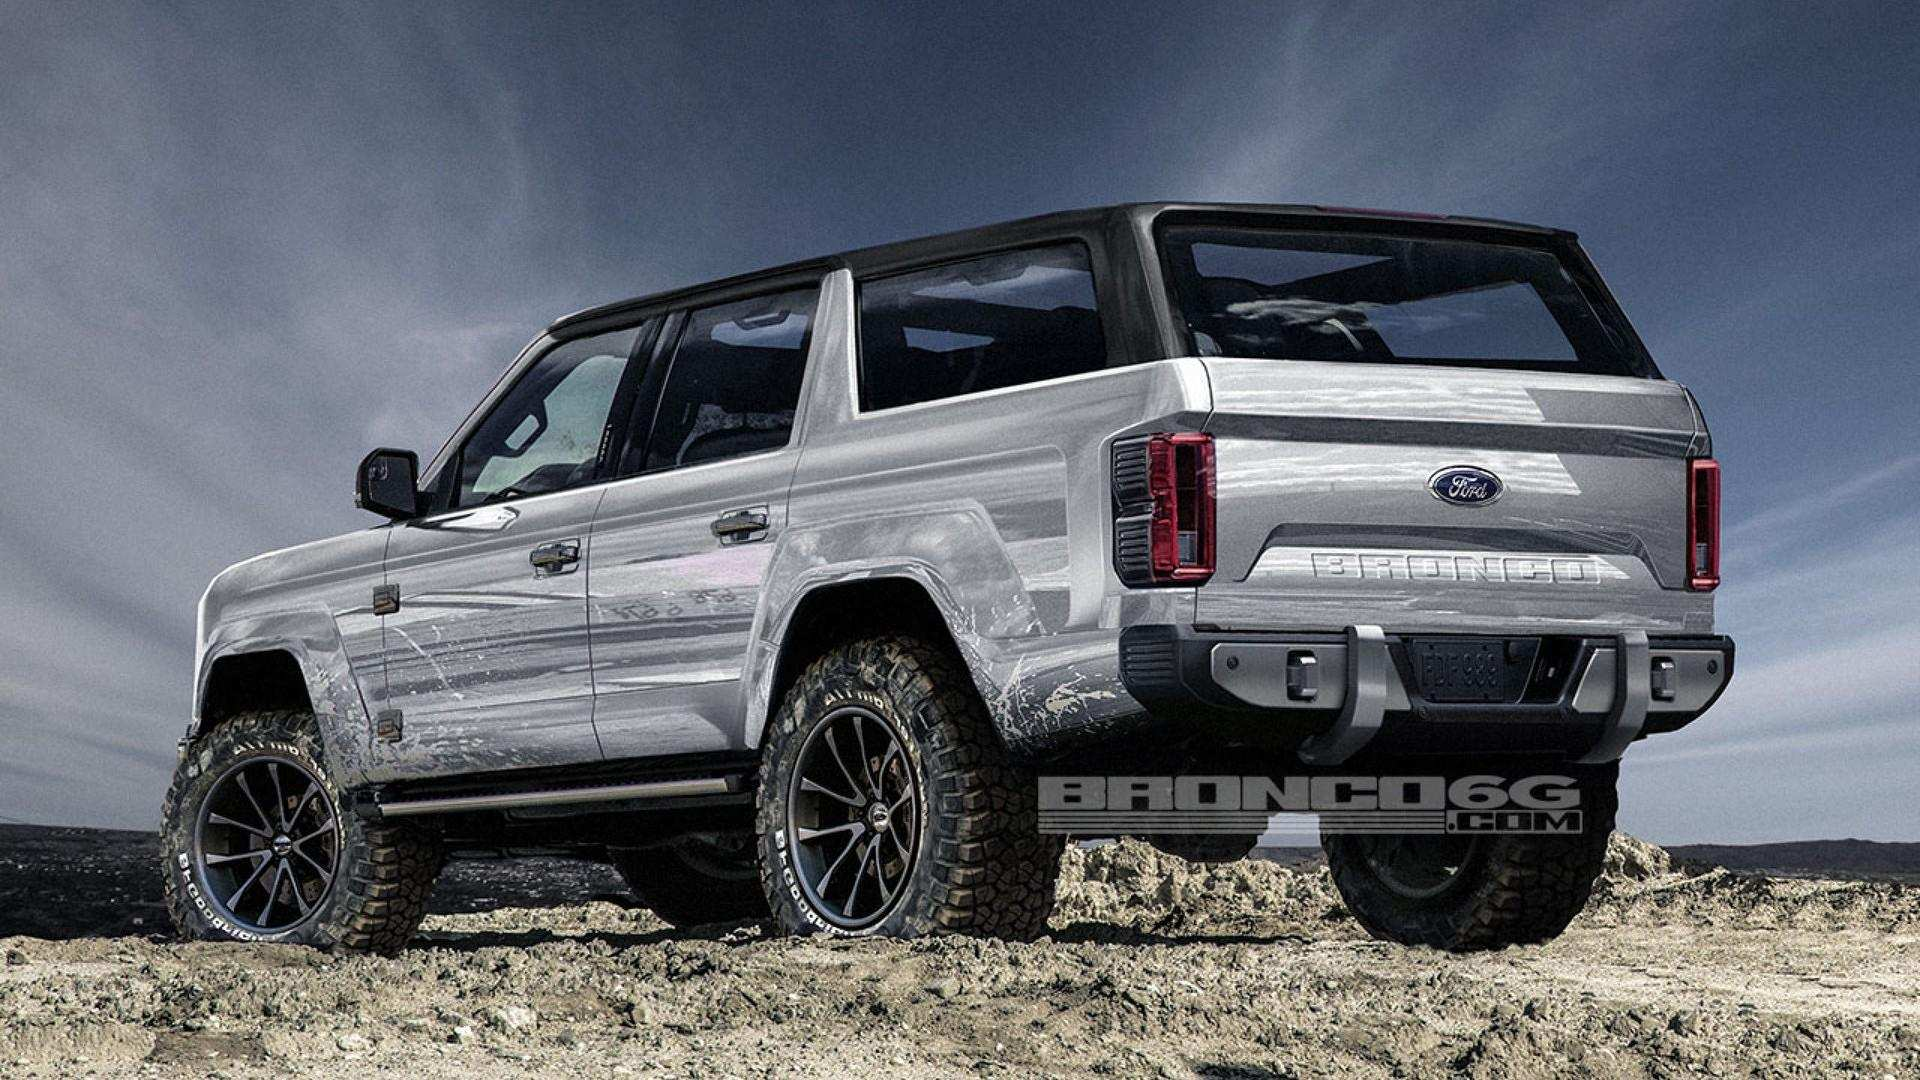 49 The Best How Much Is The 2020 Ford Bronco Price